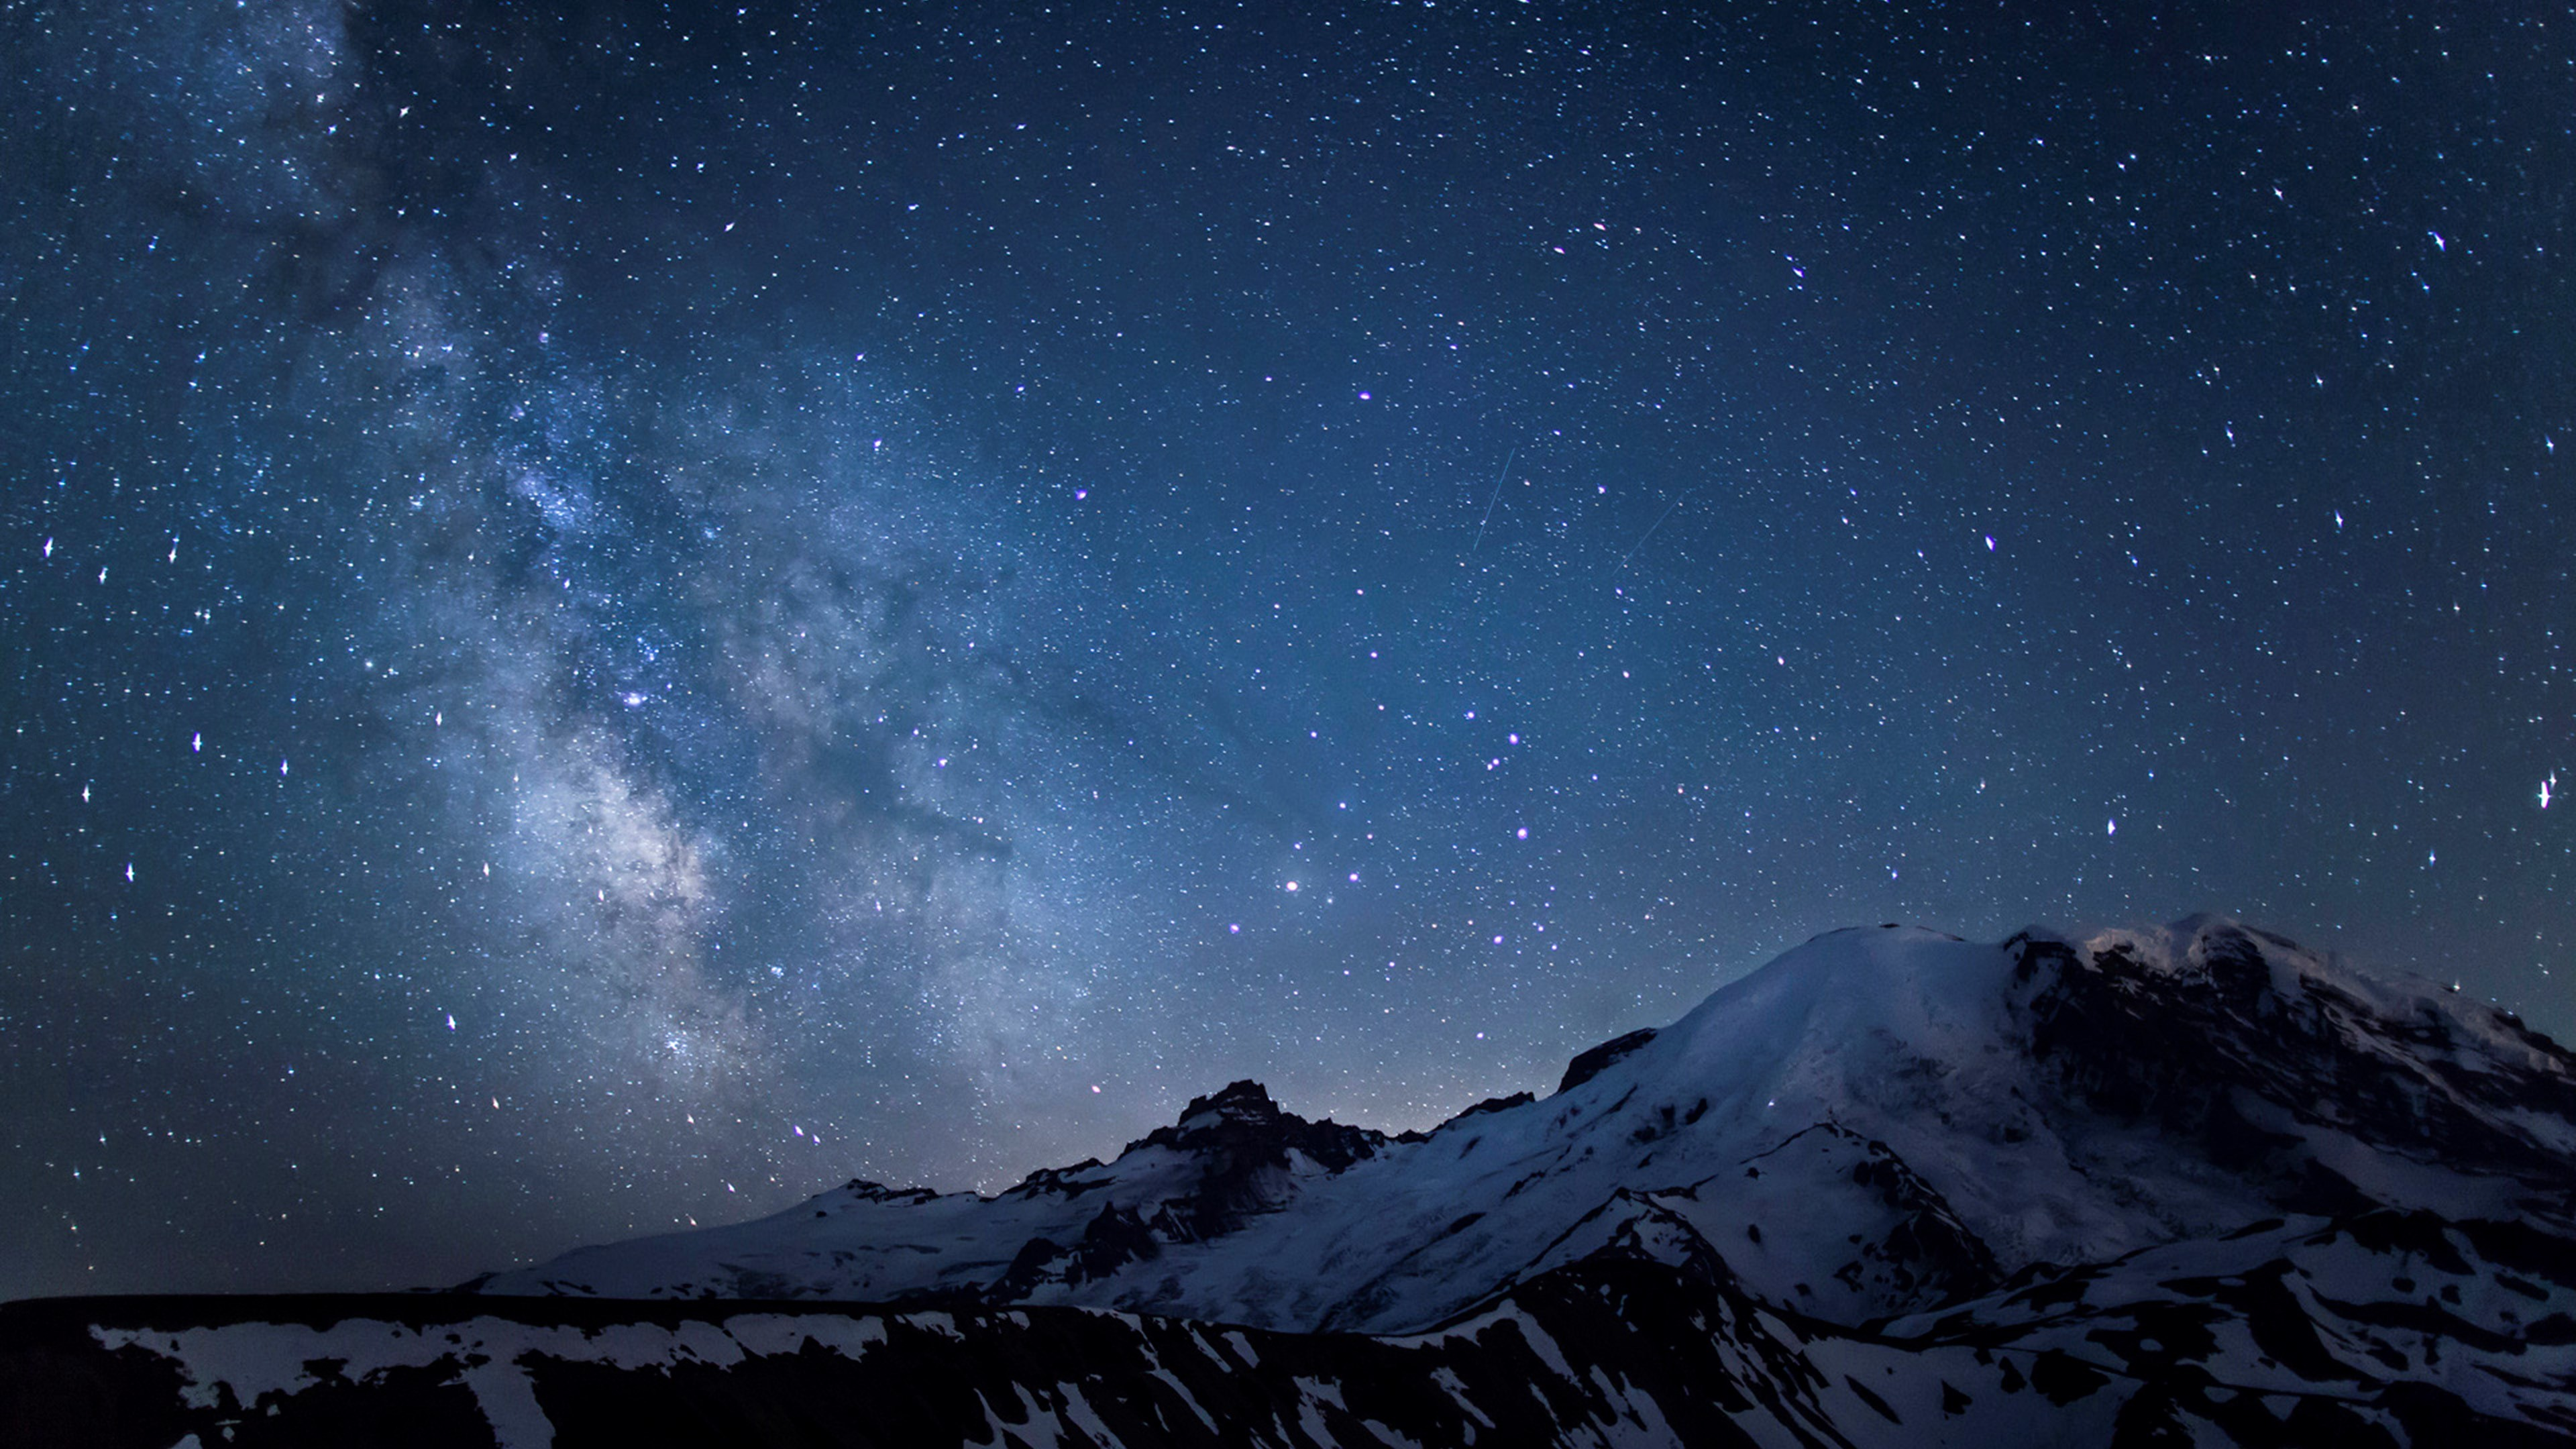 3840x2160 free wallpaper and screensavers for milky way